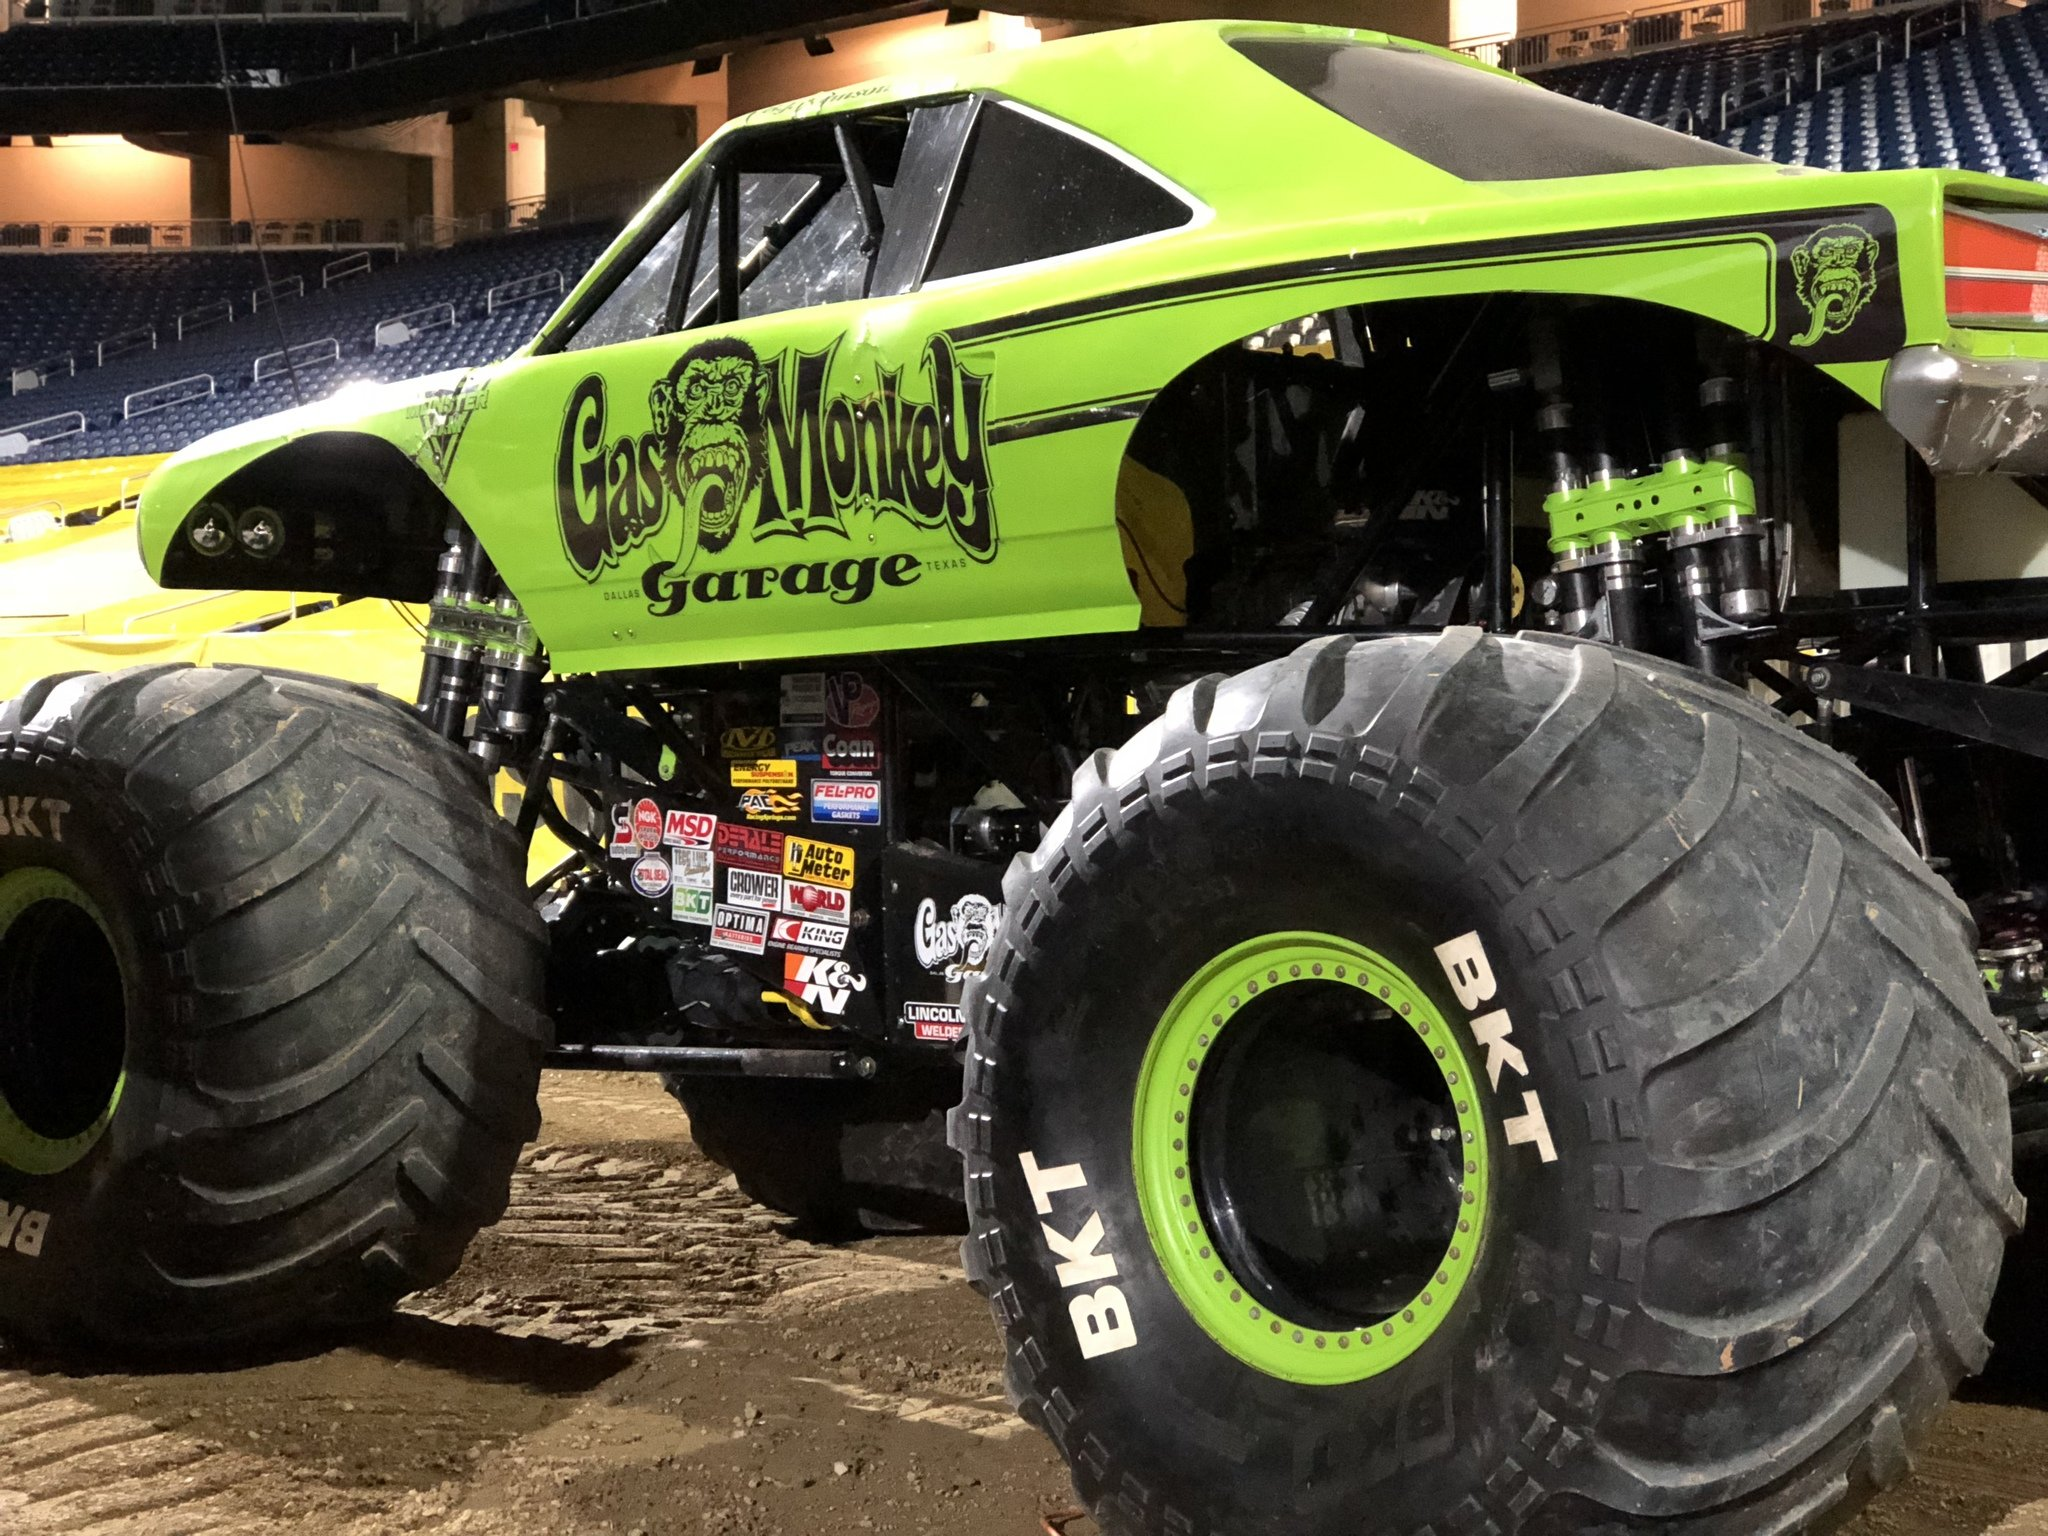 20 things you didn't know about monster trucks as Monster Jam comes ...